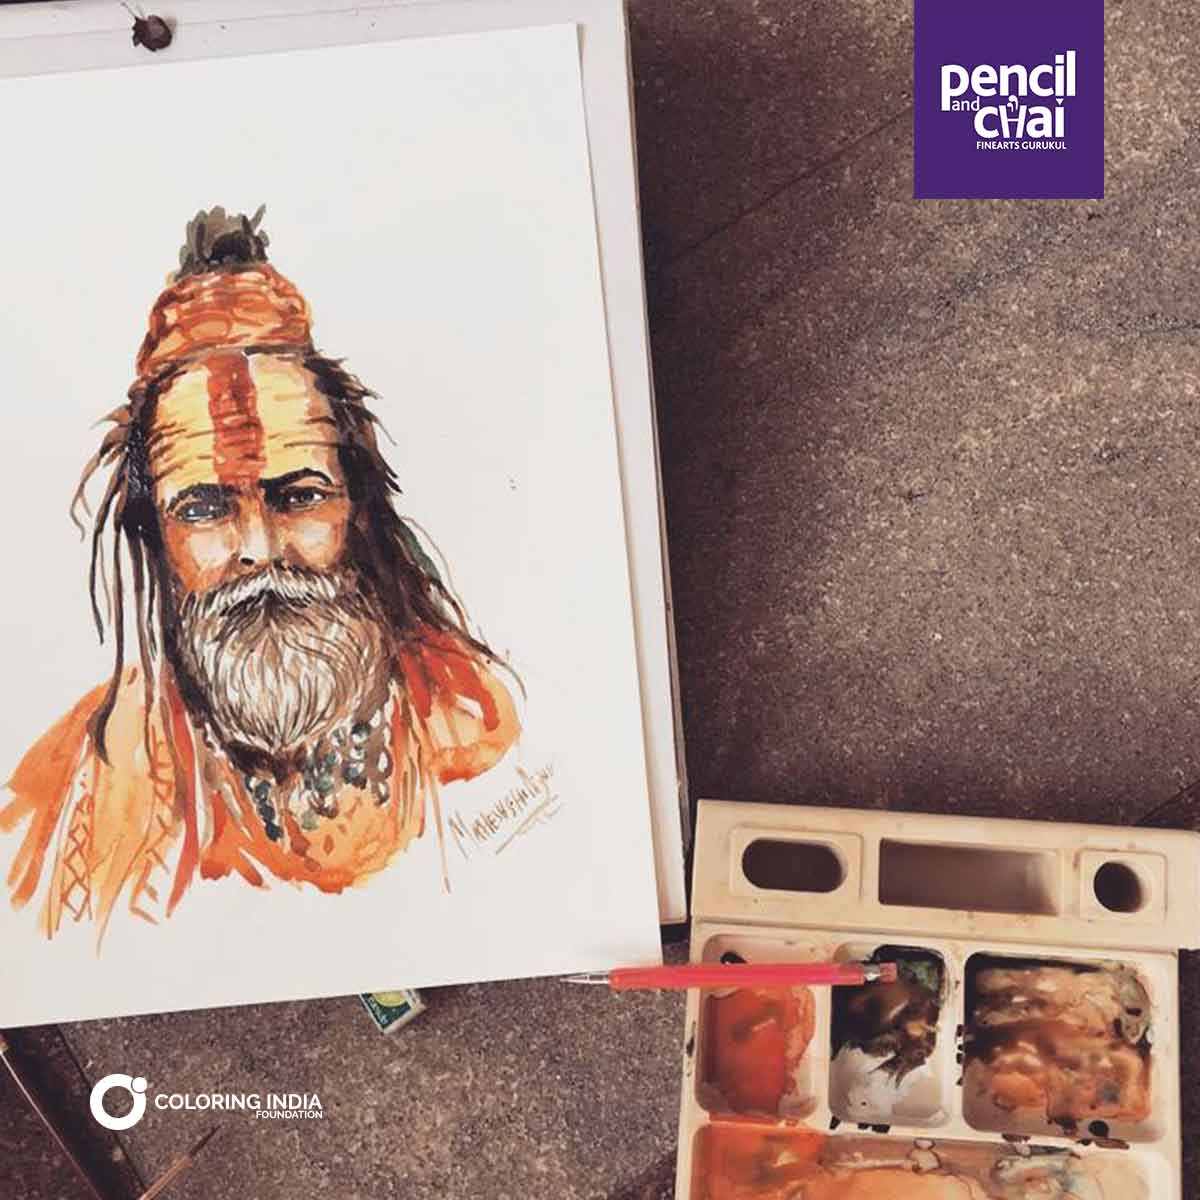 Watercolor-Painting-Classes-by-Pencil-And-Chai fine arts courses - Watercolor Painting Classes by Pencil And Chai - Fine Arts Courses Offered by Pencil And Chai